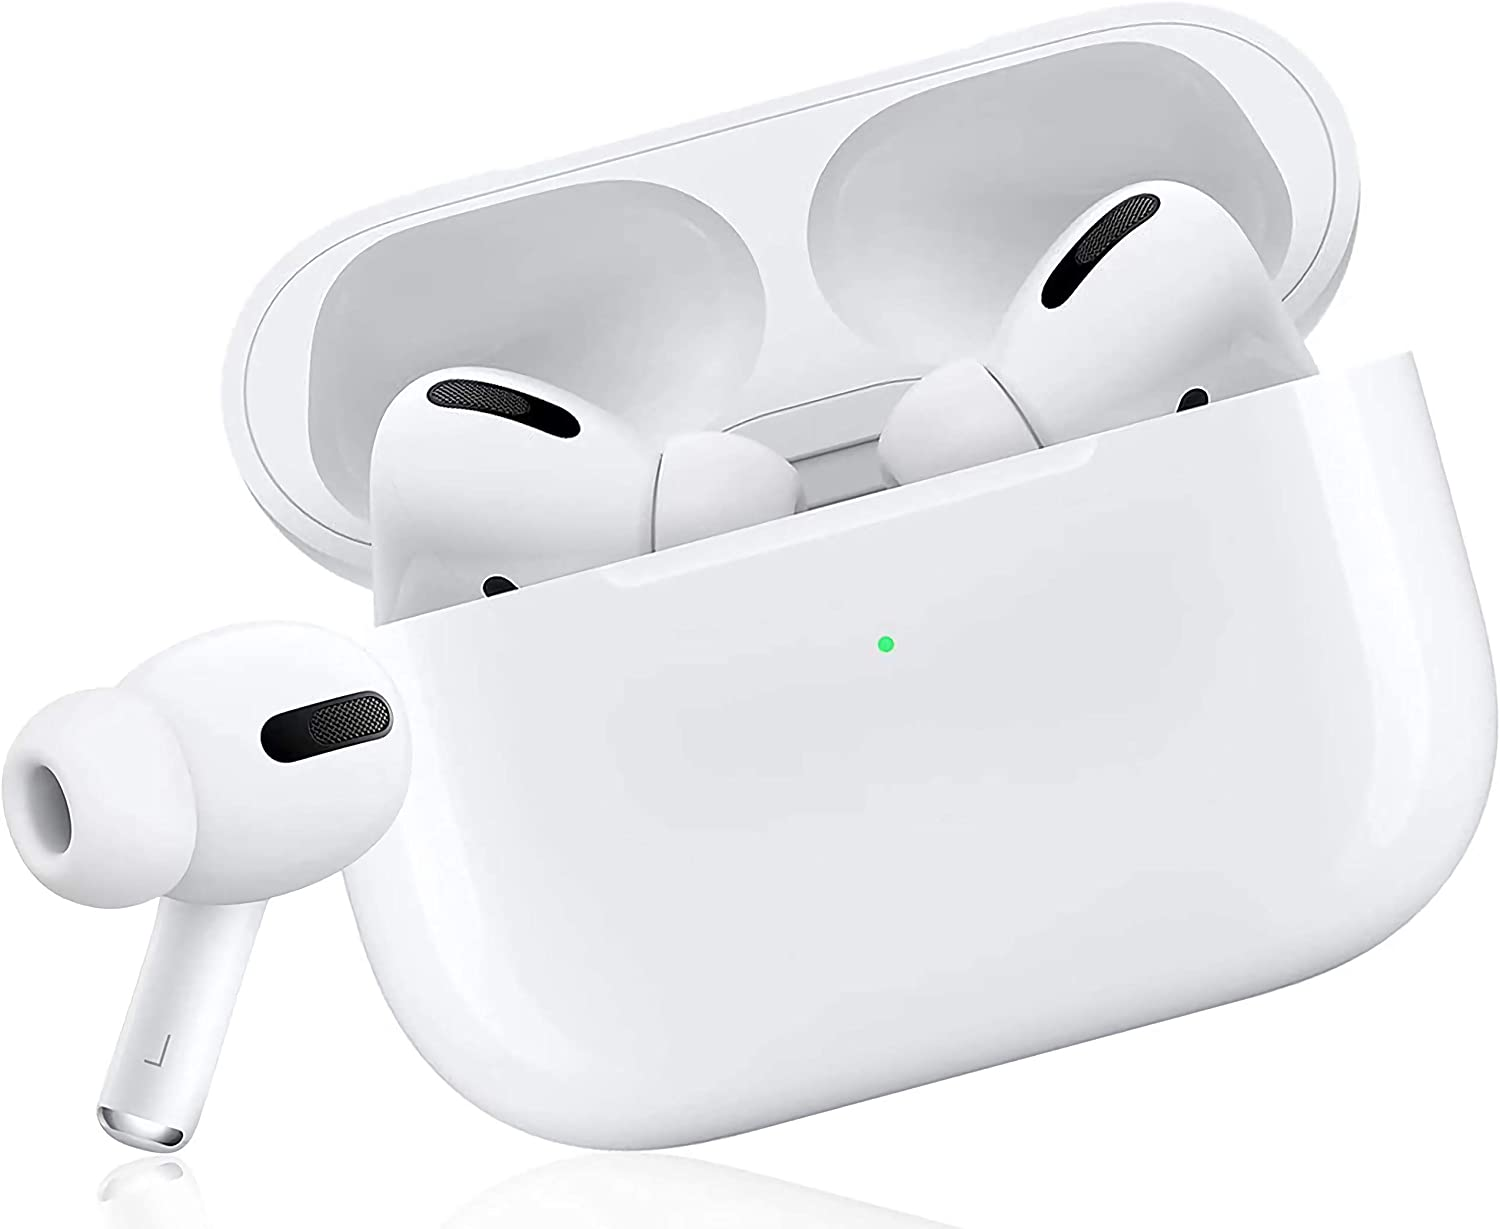 Wireless Earbuds Bluetooth Headphones with Charging Case IPX5 Waterproof Sports Headphones with Built-in Mic, Touch Control Bluetooth Earbuds Suitable for iPhone/Android/Samsung